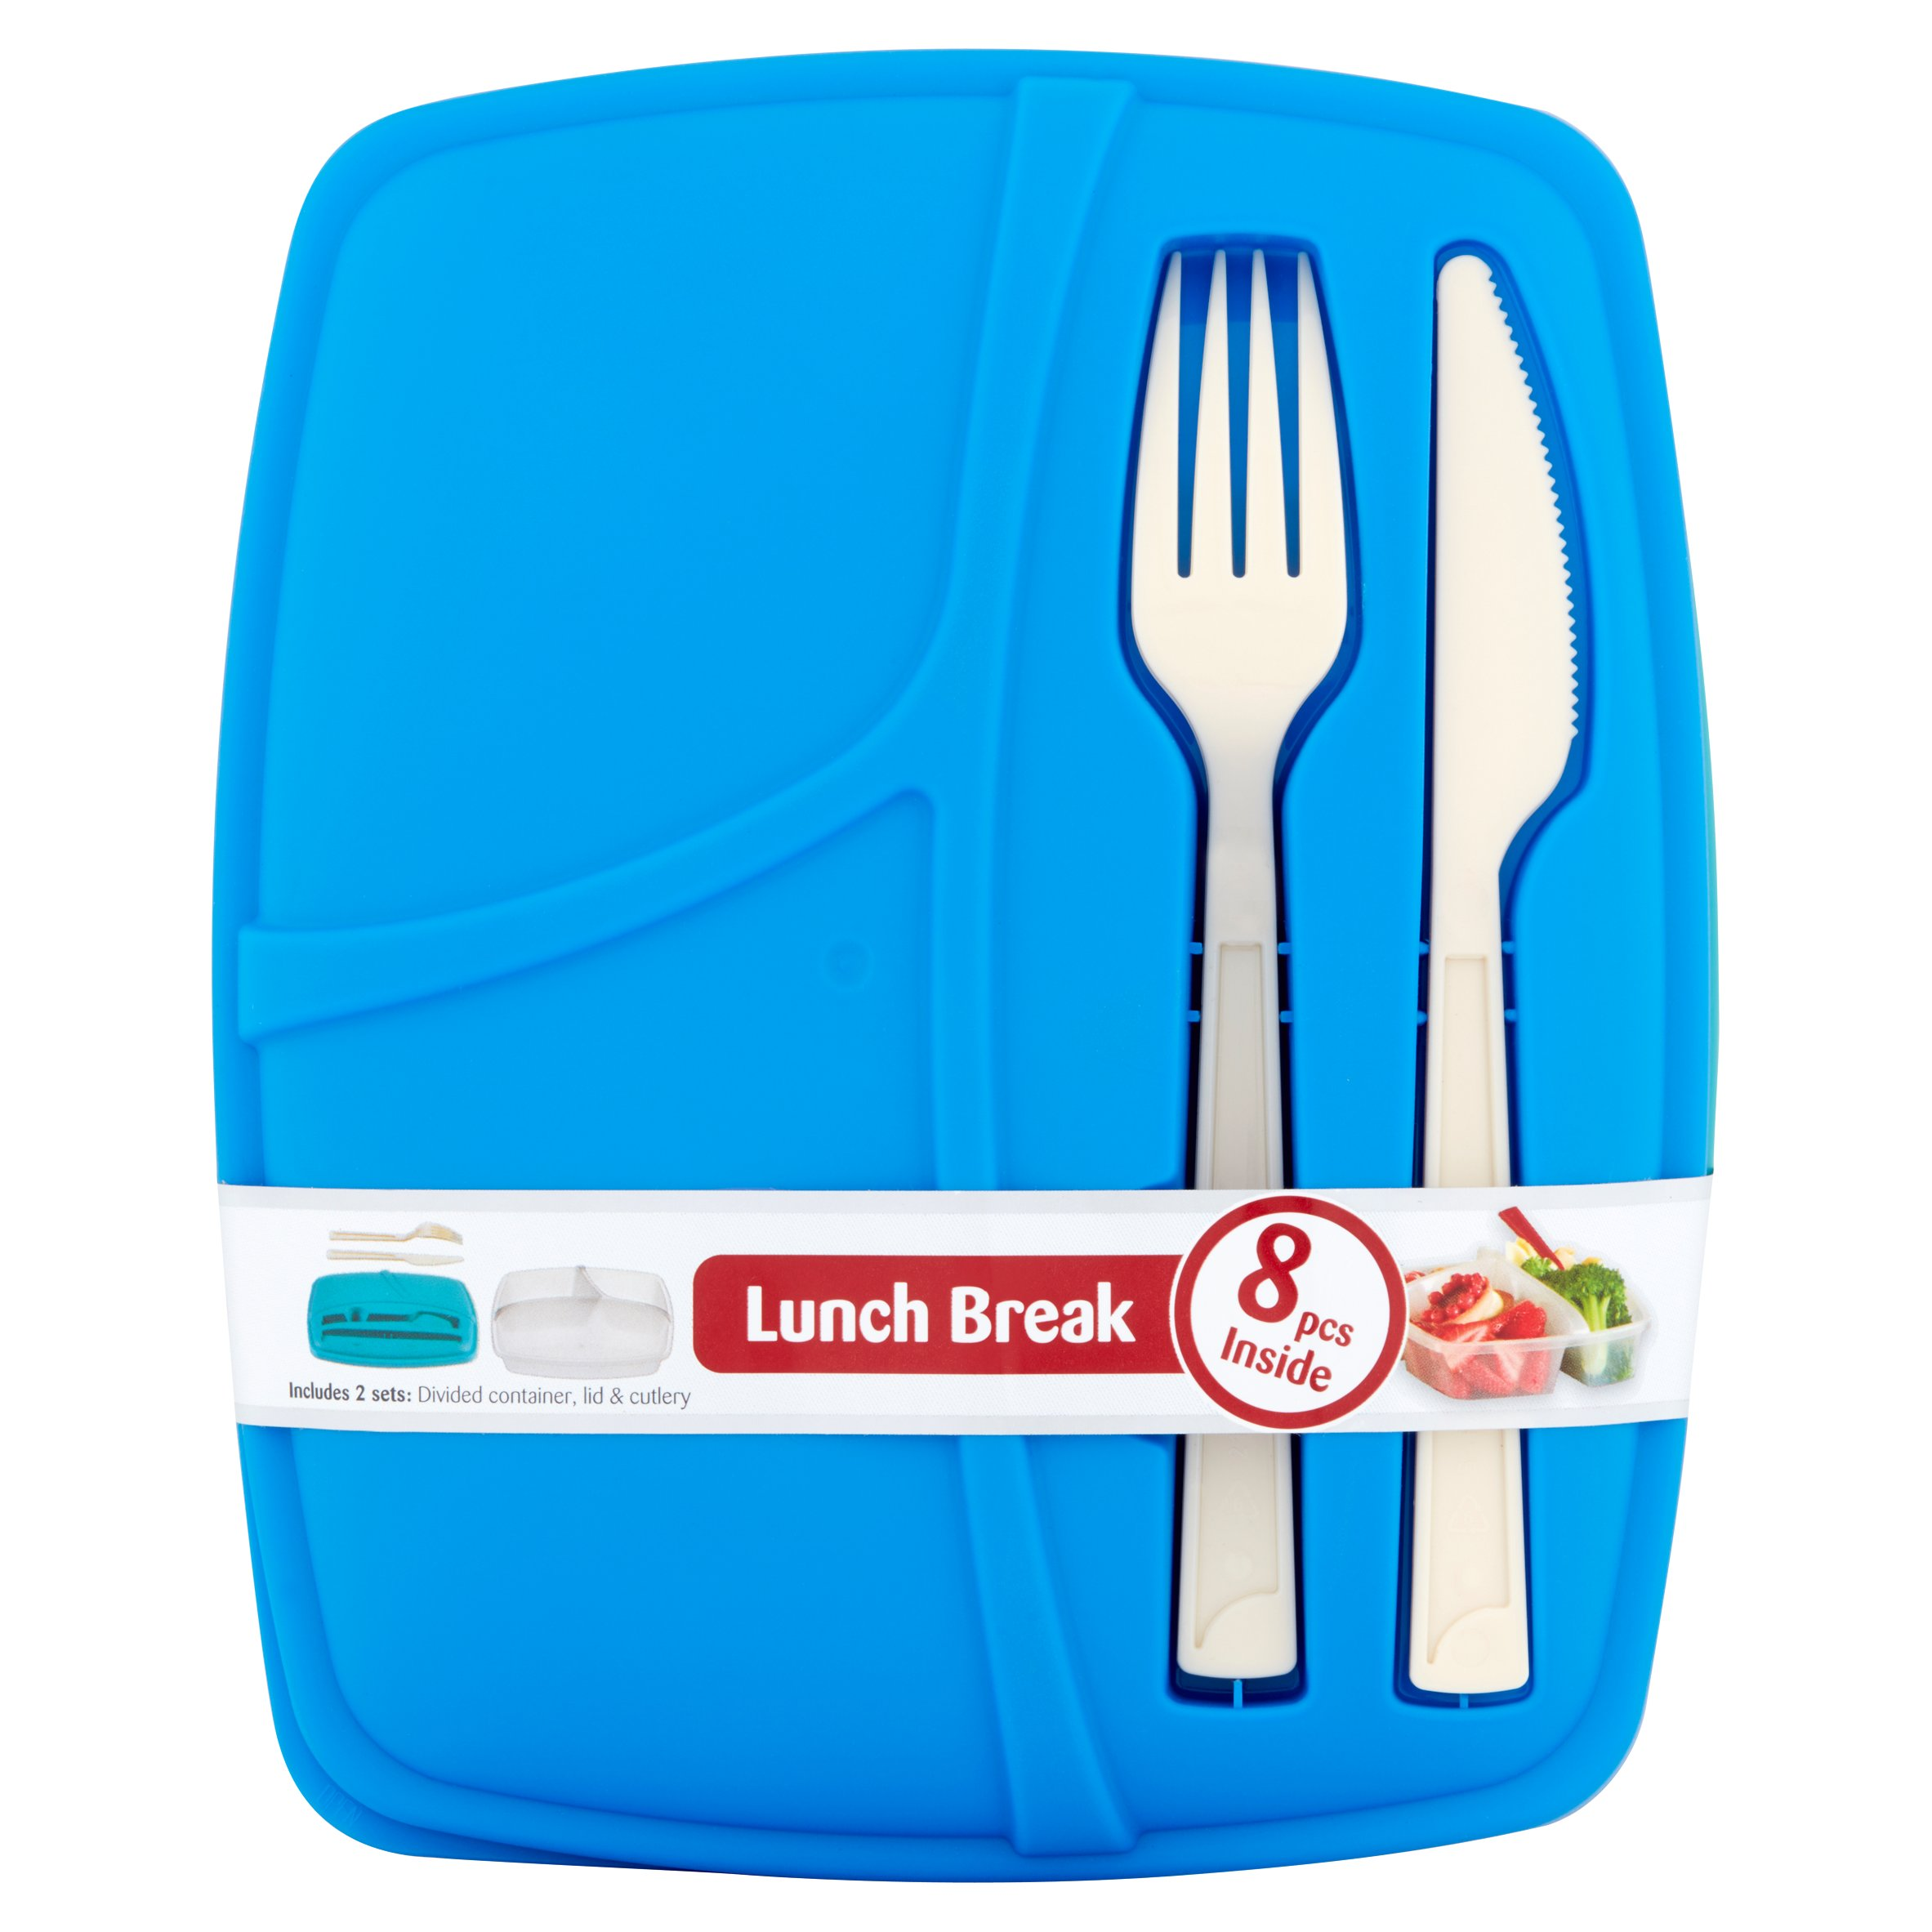 Bramli Frooshii Lunch Break 33.8 oz Divided Container, Lid & Cutlery, 2 pack